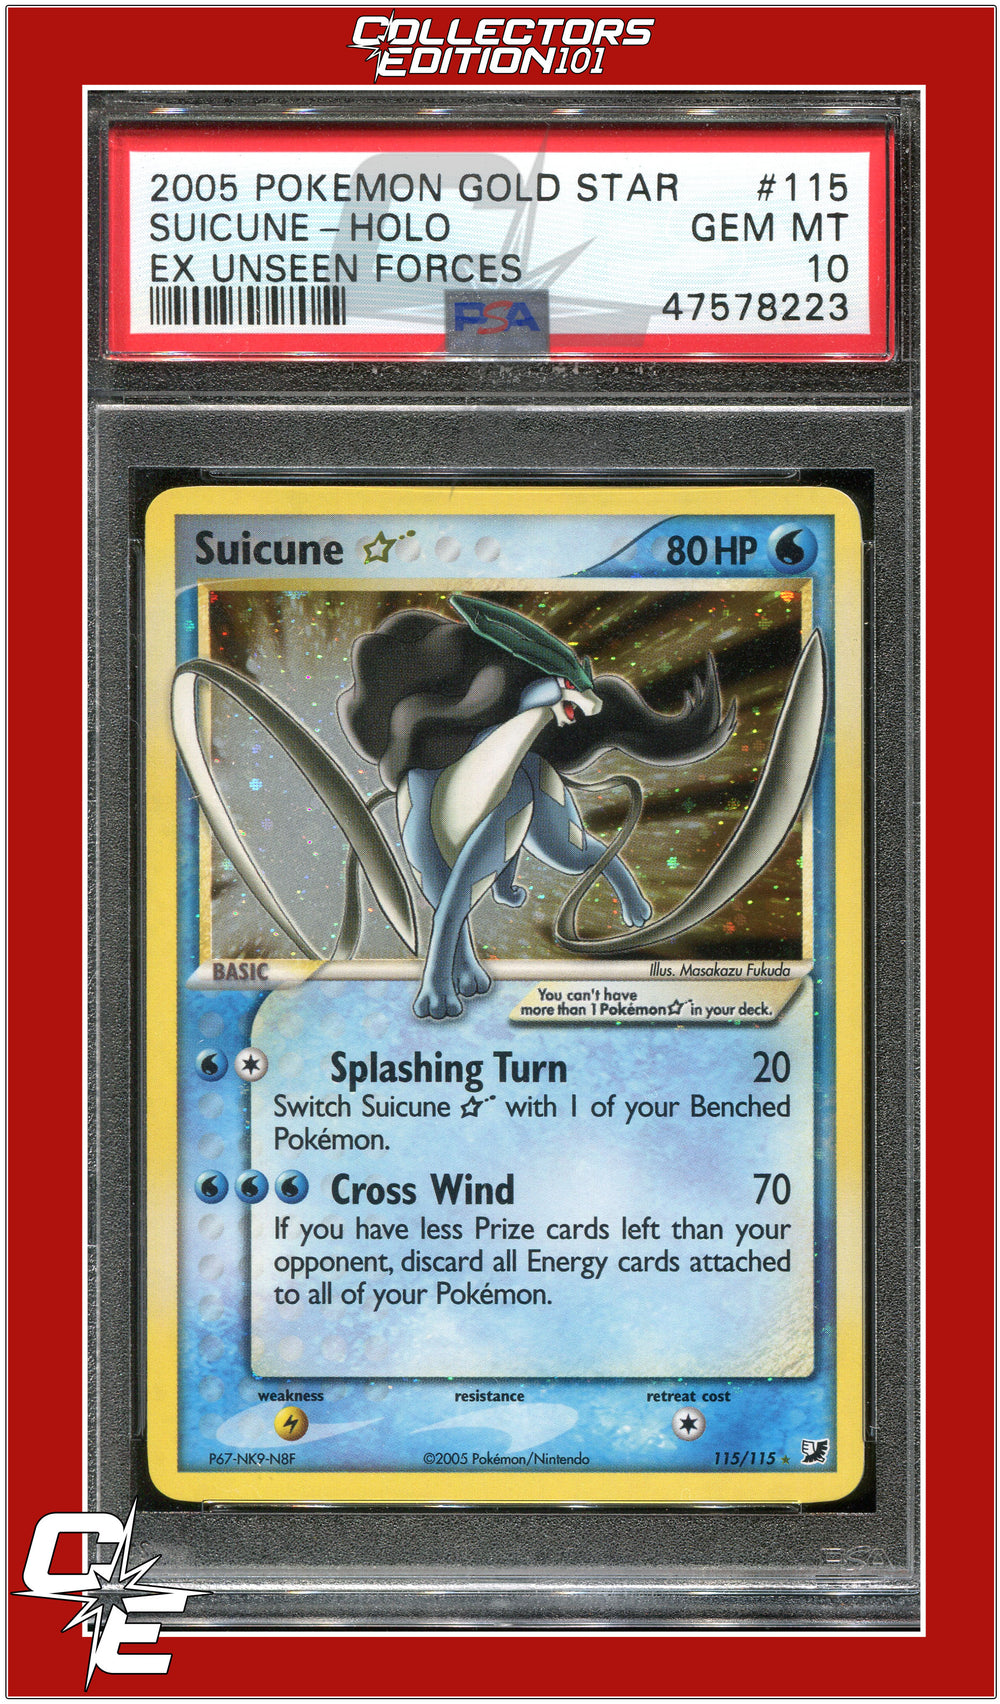 EX Unseen Forces 115 Suicune Holo Gold Star PSA 10